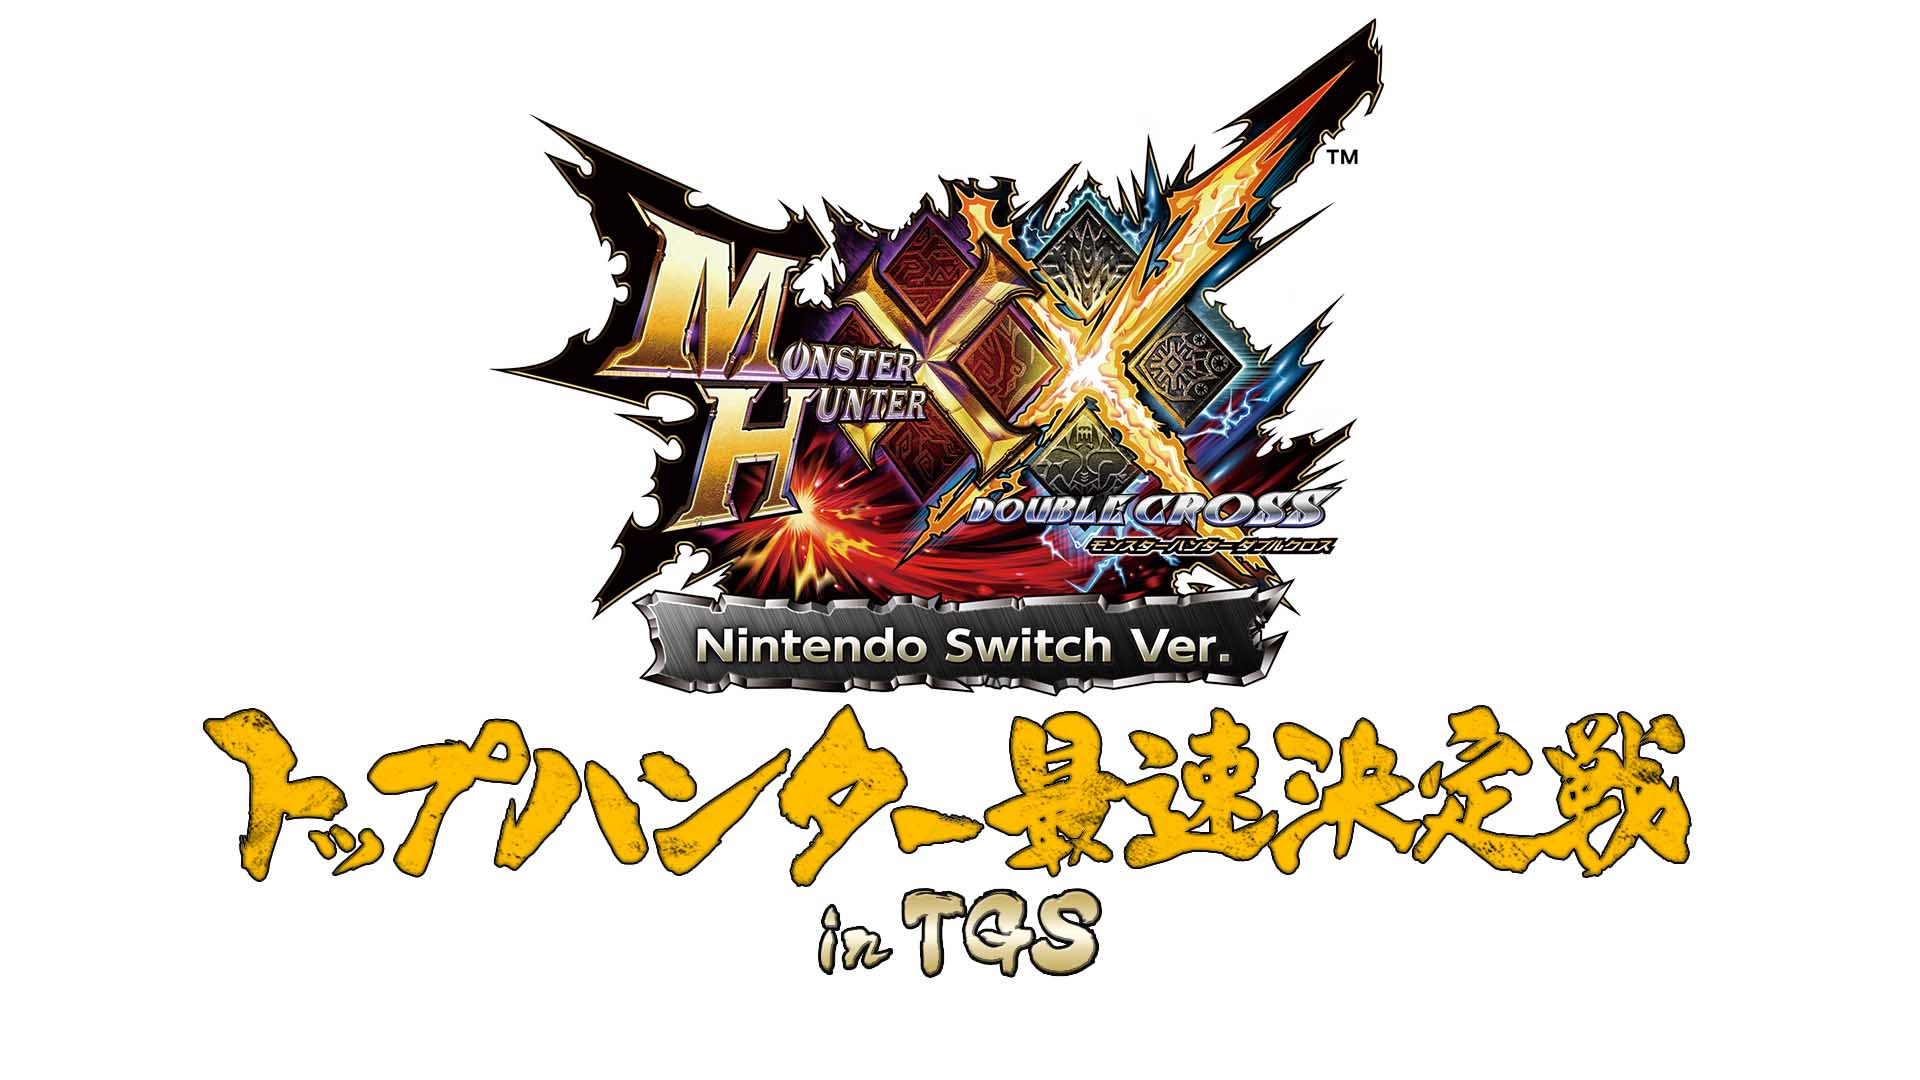 Monster Hunter Double Cross Nintendo Switch Ver